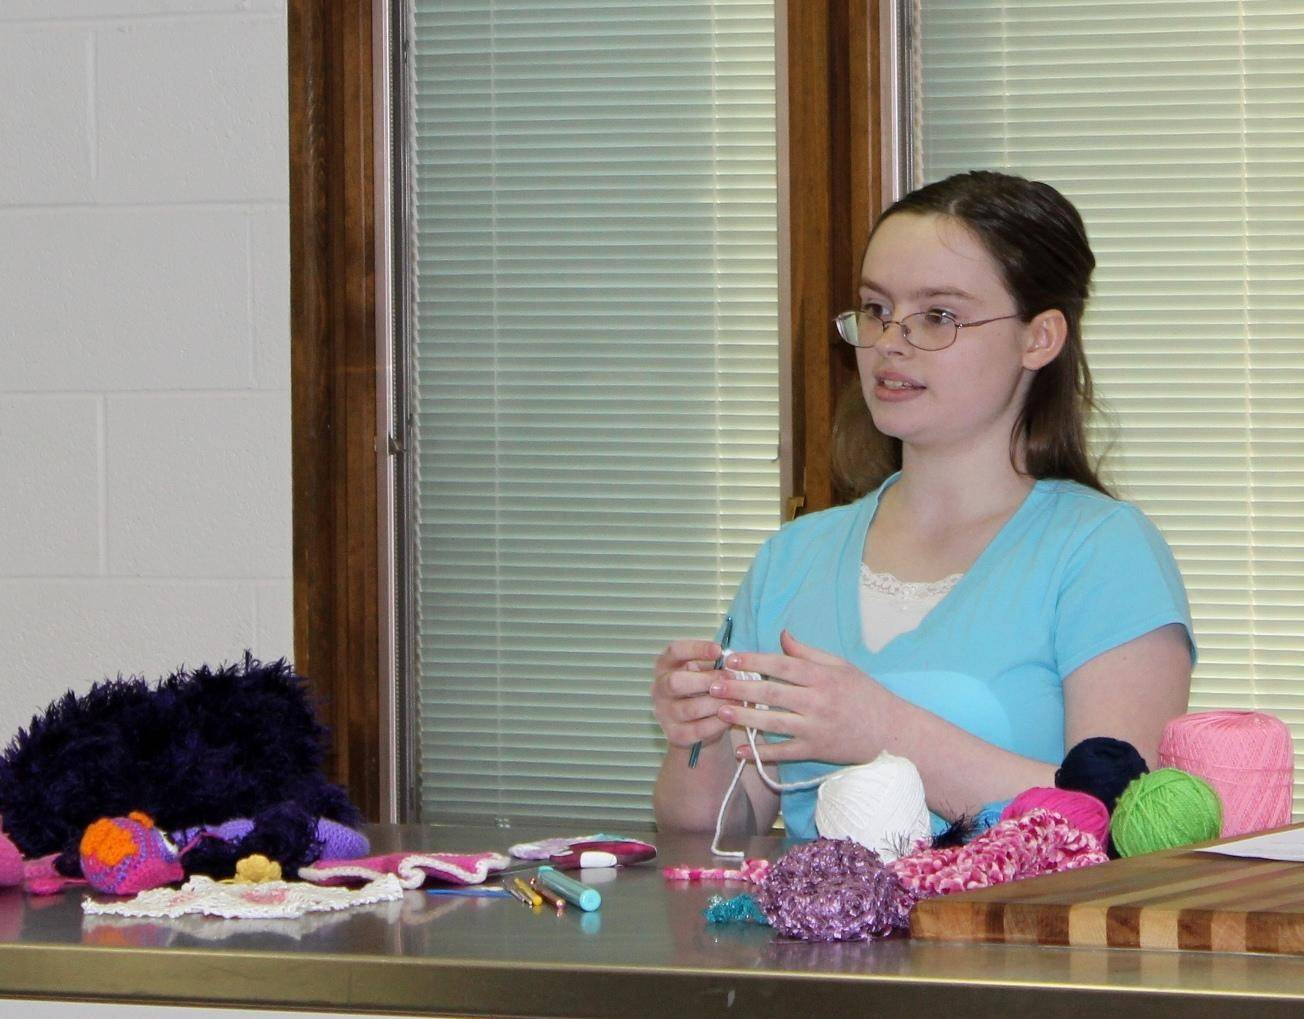 Emily Smeenge of Rolling Meadows demonstrates crochet techniques during the Kane County 4-H Public Presentation and Demonstration Contest on May 9. She went on to win State Fair Delegate in the formal speech category.